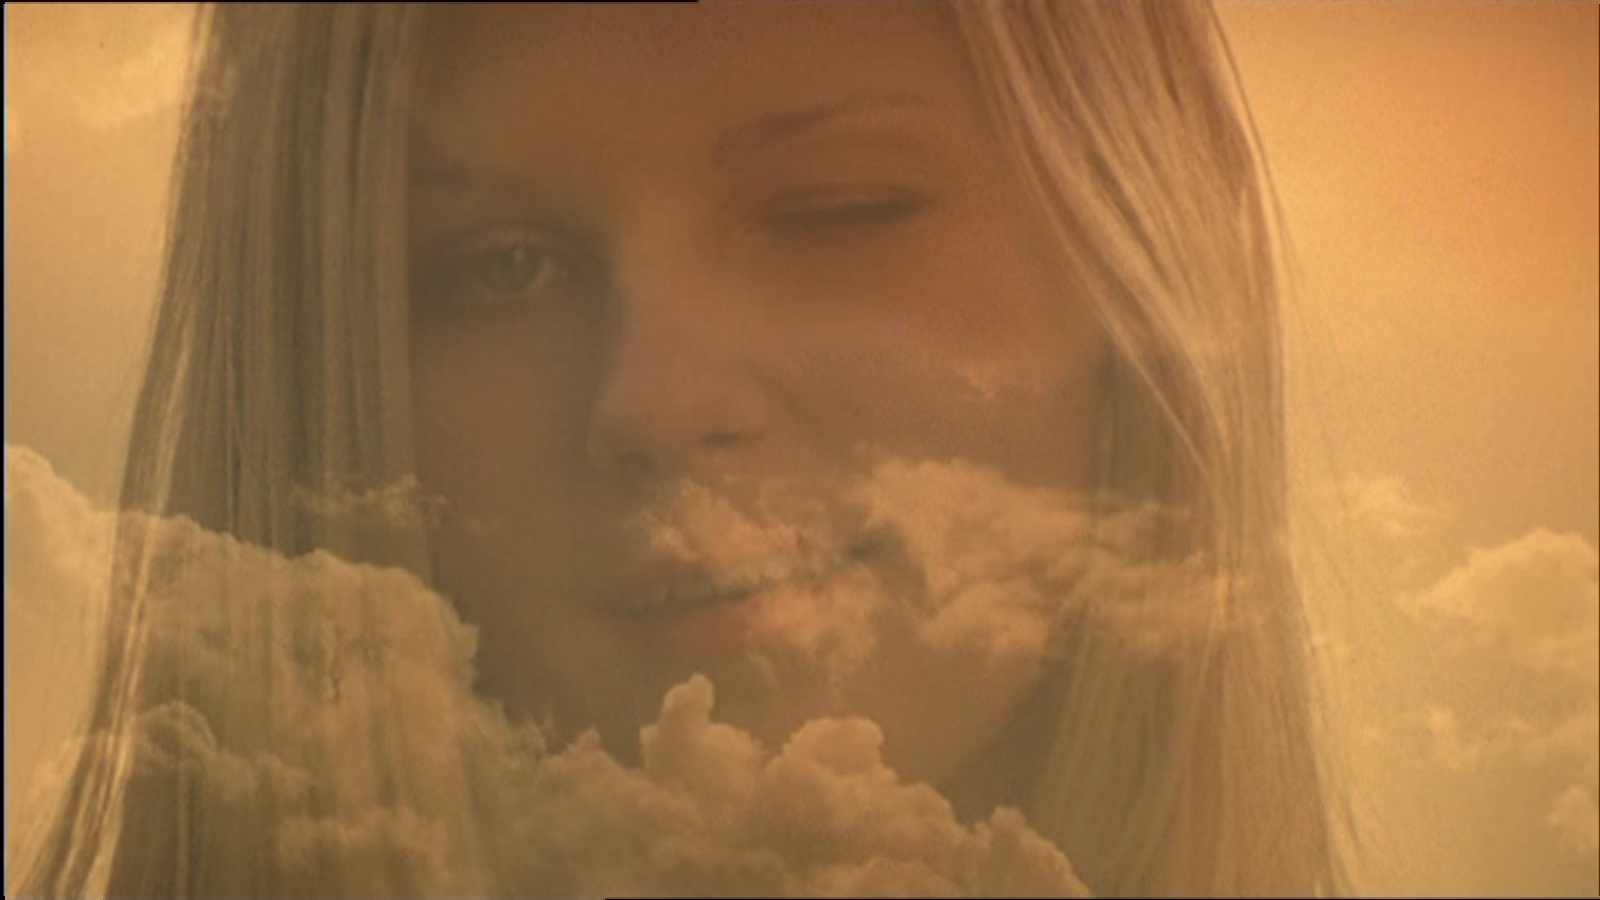 Looking back at 'The Virgin Suicides': The horror in the drama